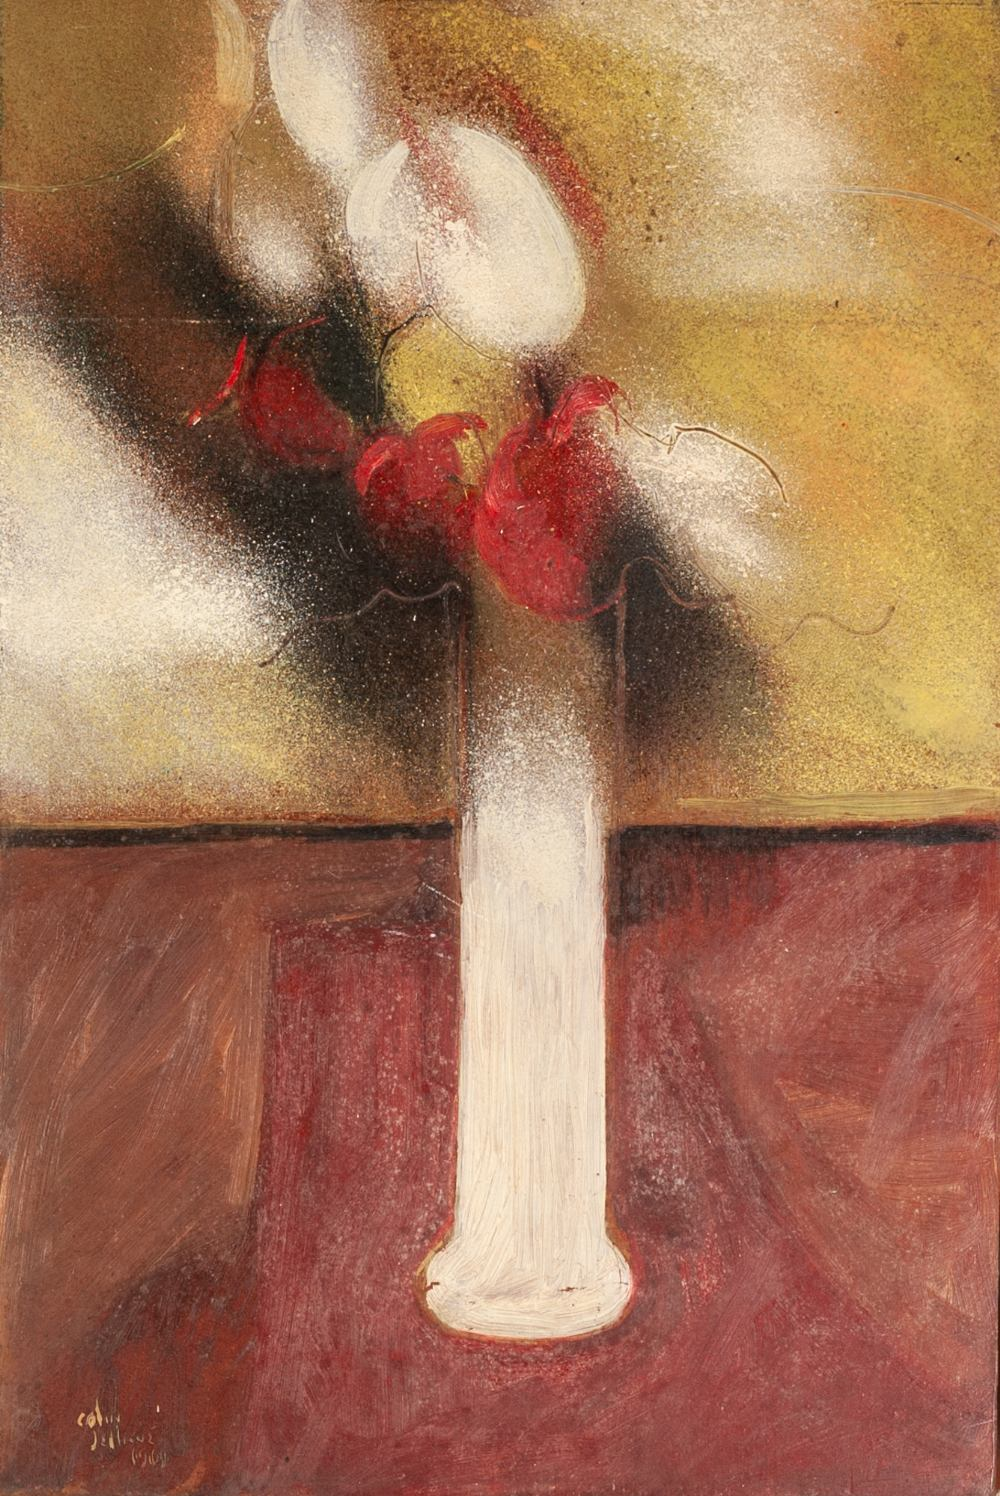 Lot 5 - COLIN JELLICOE (1942 - 2018) OIL PAINTING ON BOARD 'Flowers in a Tall Vase' Signed and dated 1969,